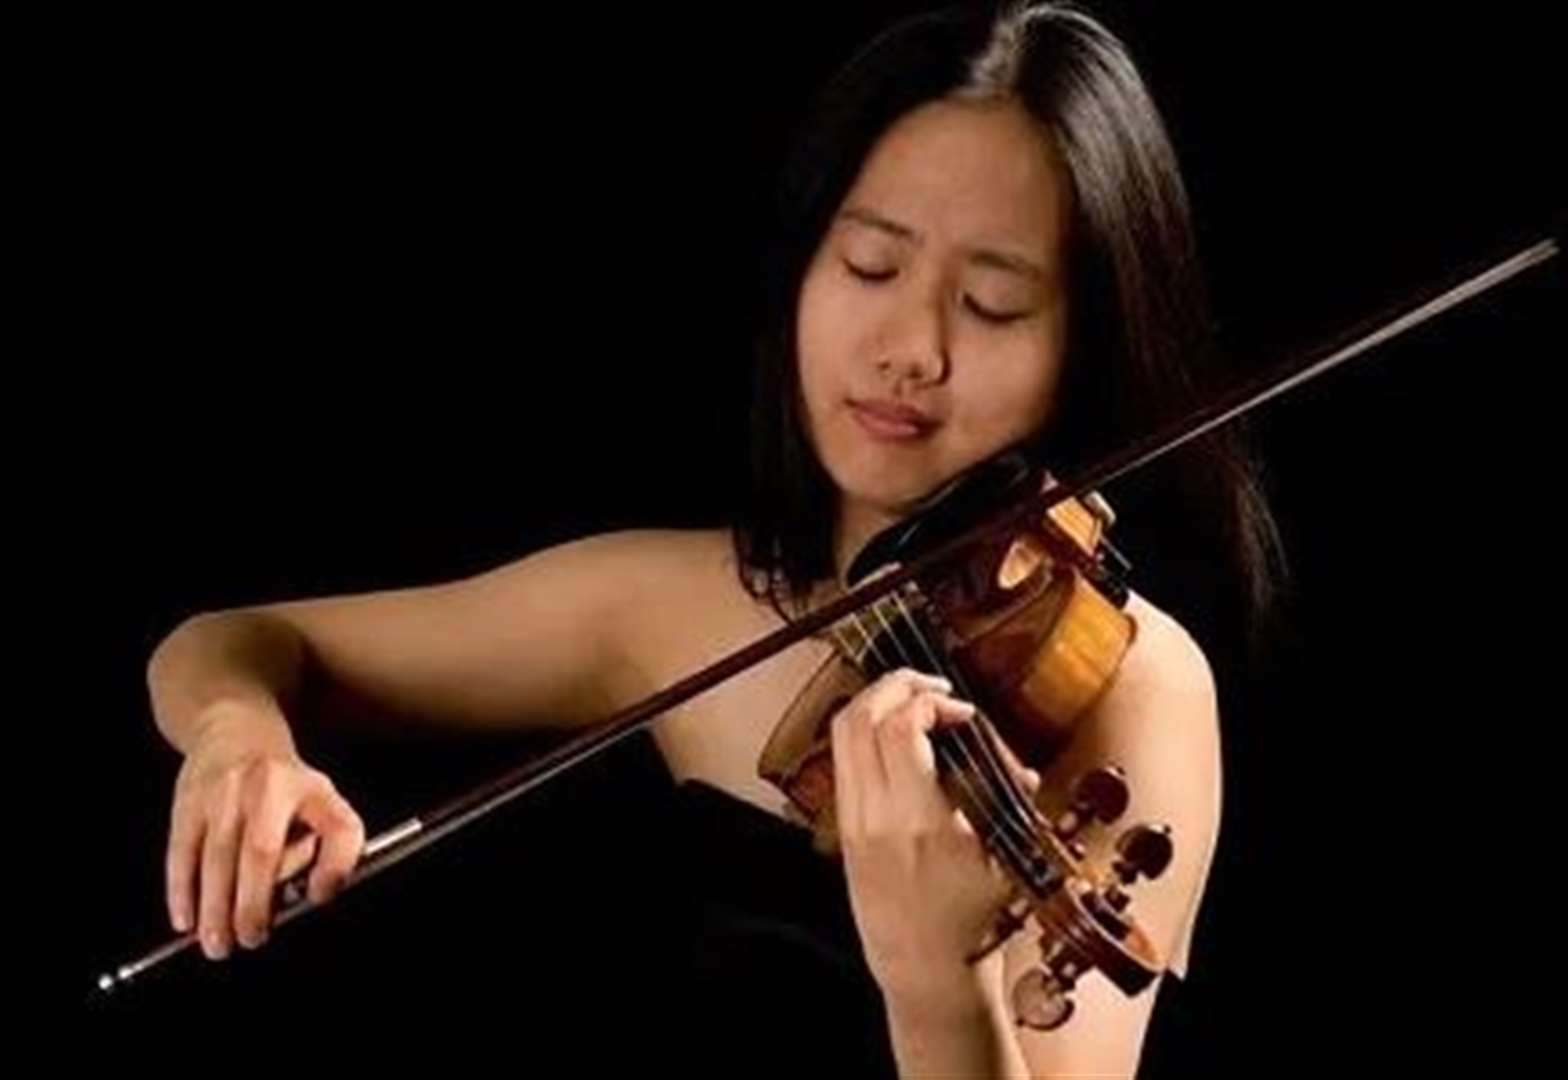 Solo violinist 'casts a spell' over audience